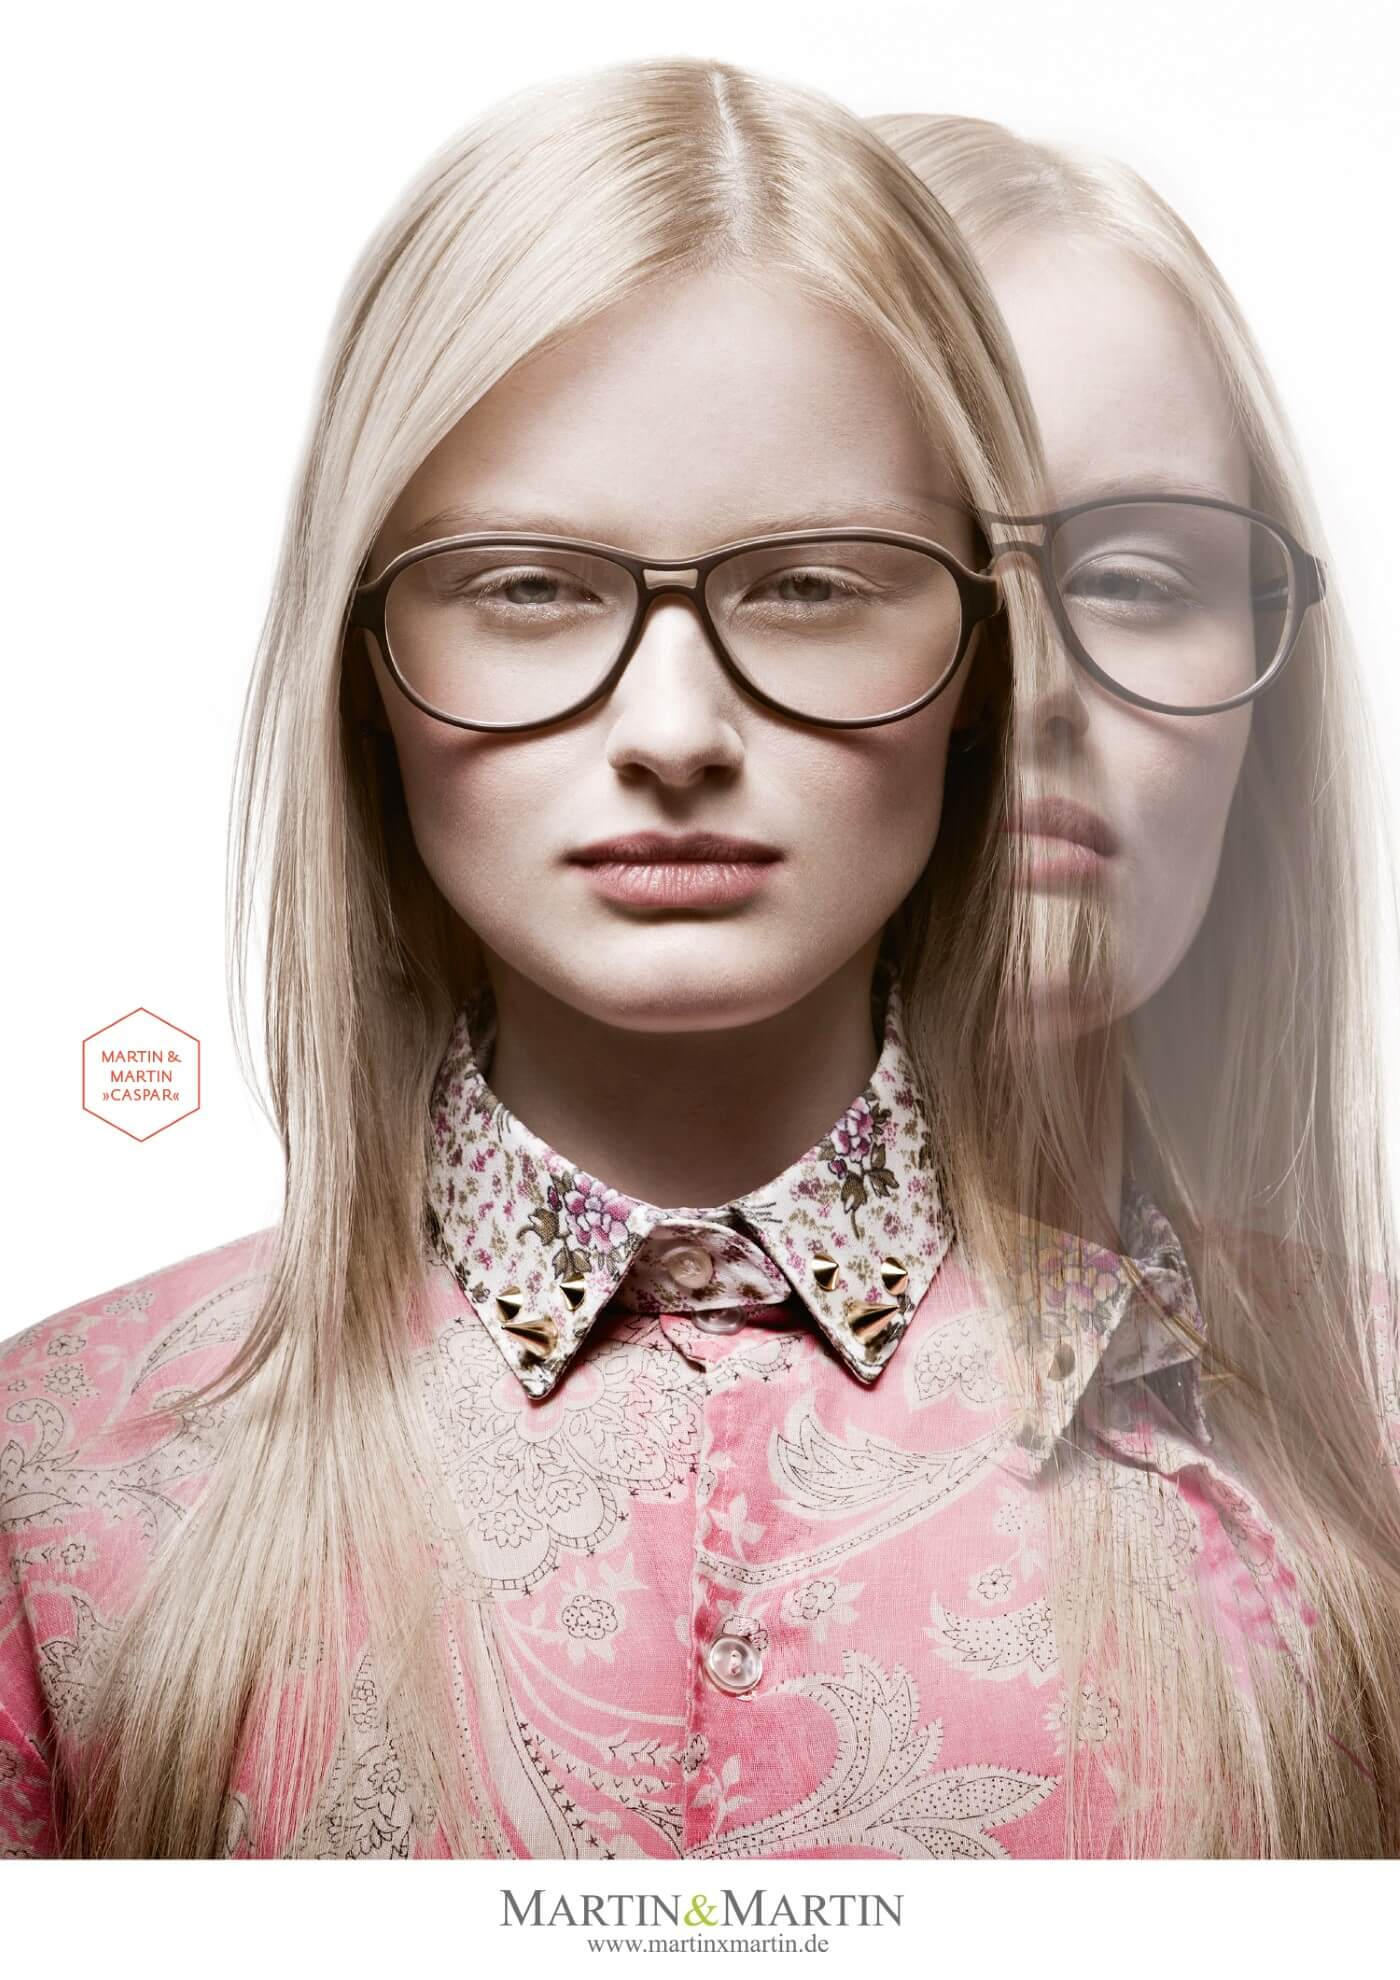 Eyewear Issue 5 / 2012 - Frame: Caspar